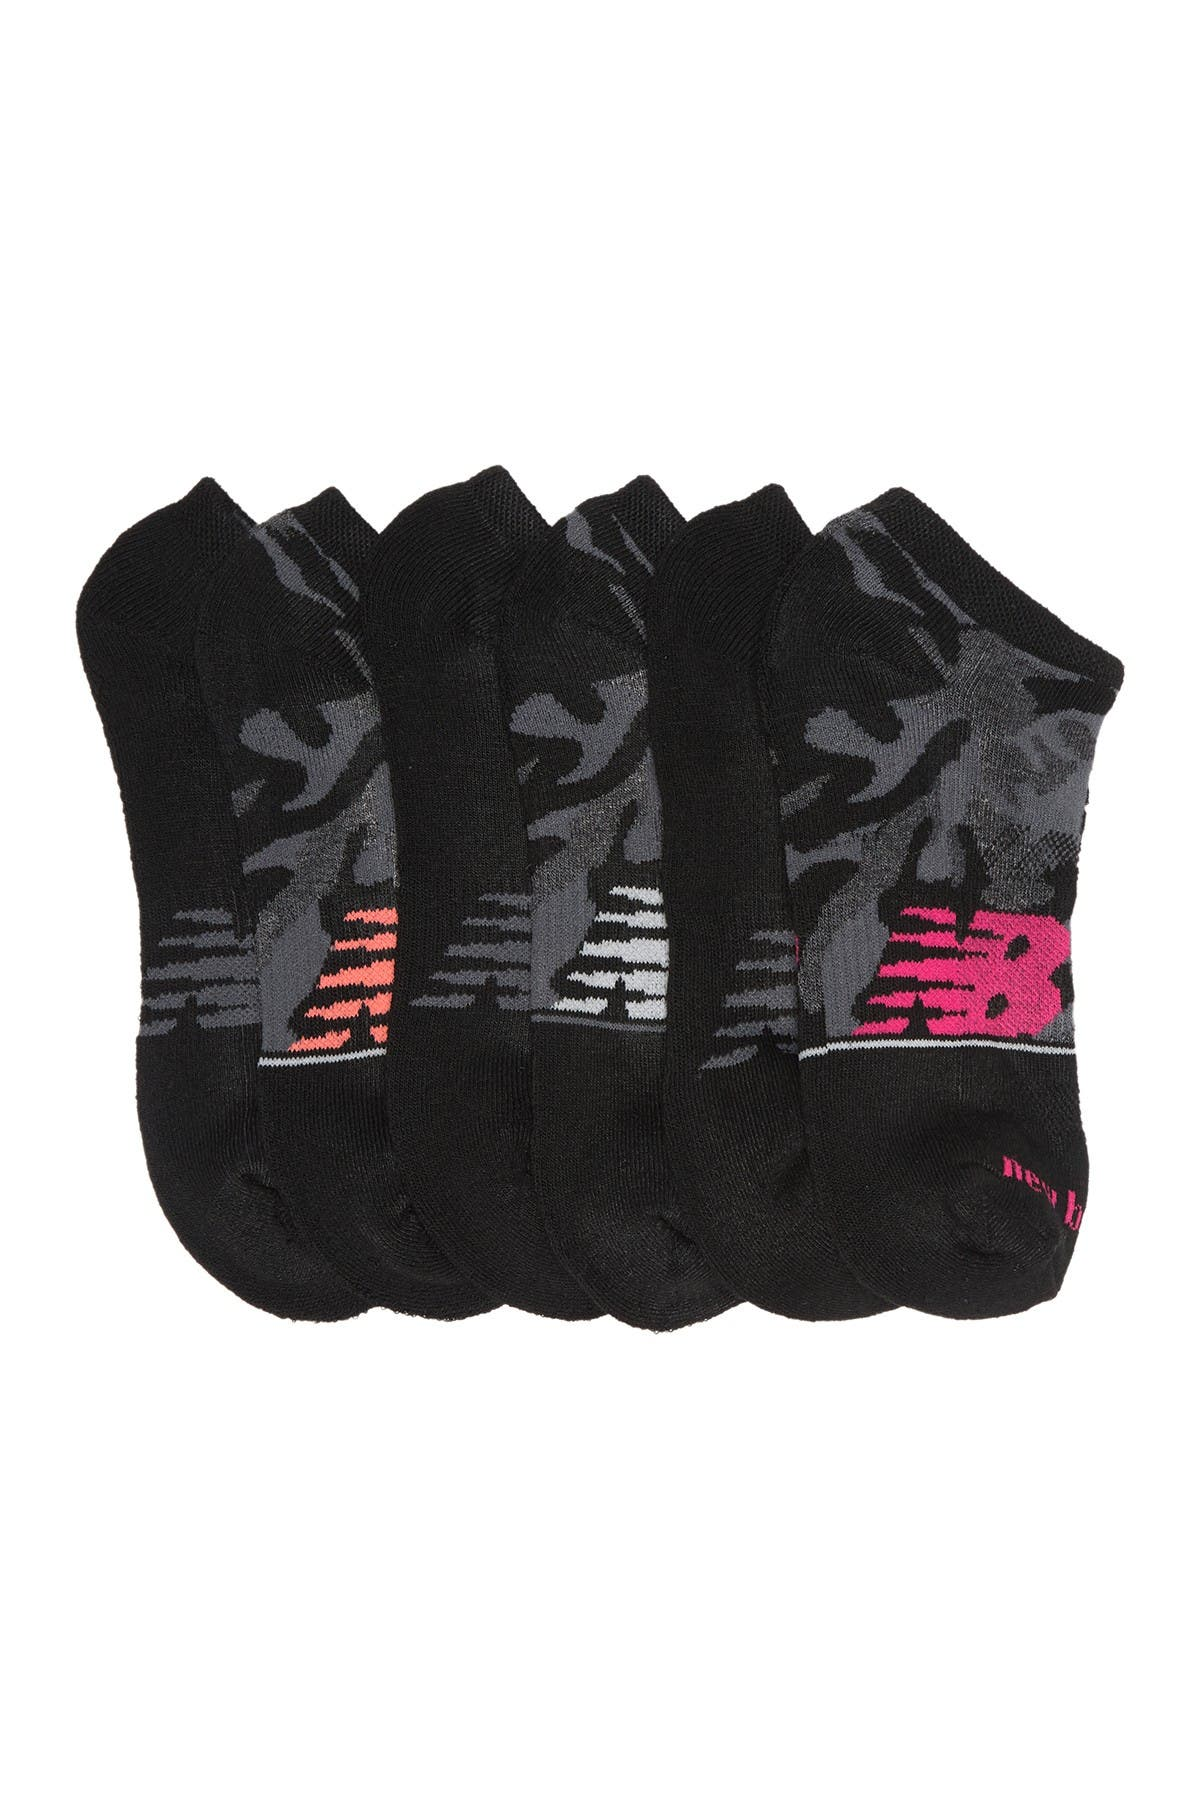 Image of New Balance Athletic Performance Low Cut Socks - Pack of 6